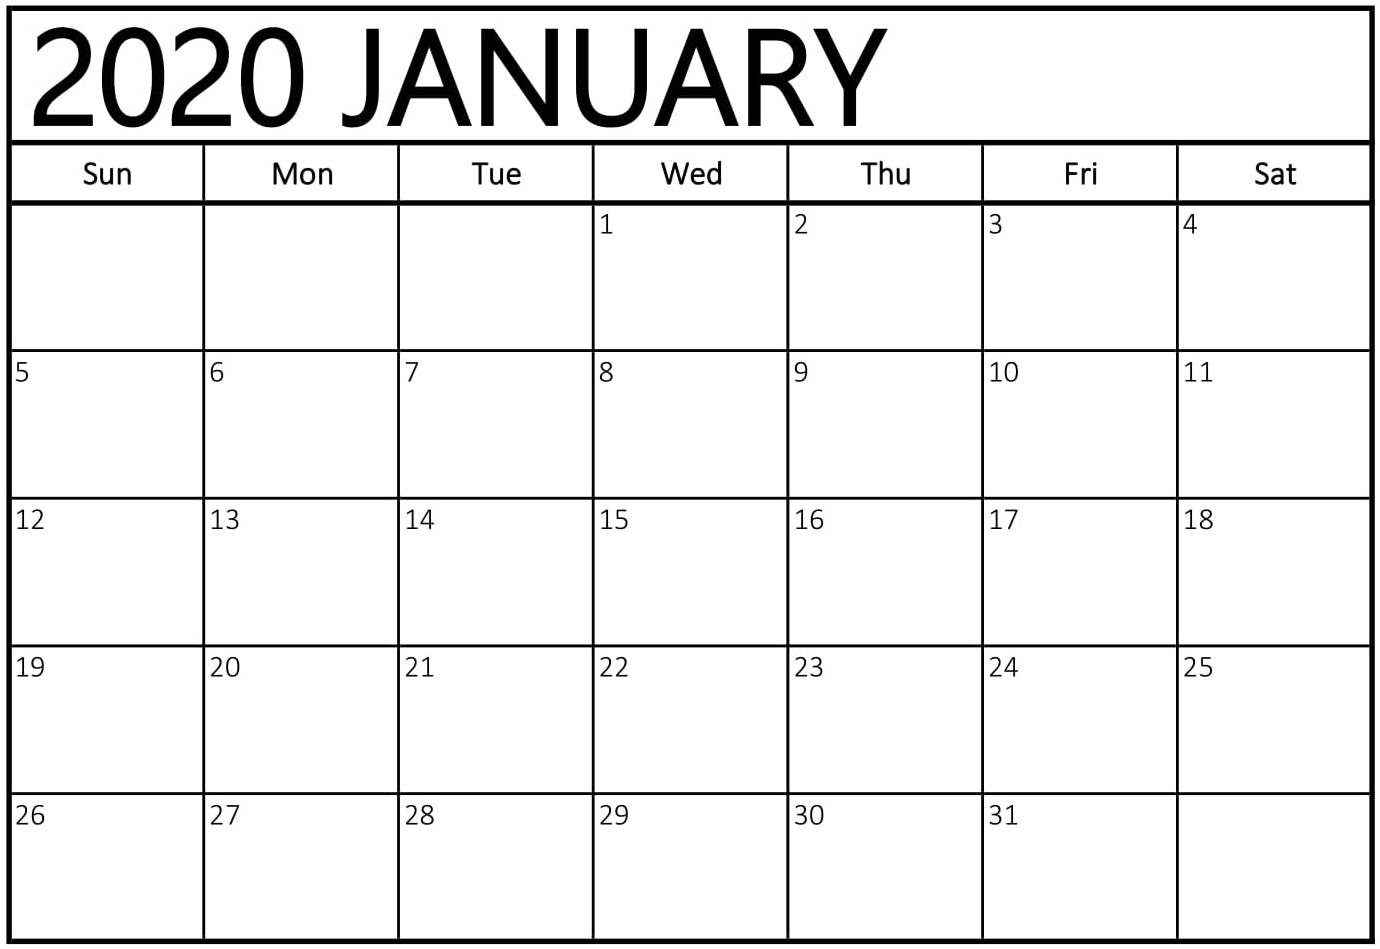 January 2020 Calendar Nz Printable With Holidays - Set Your